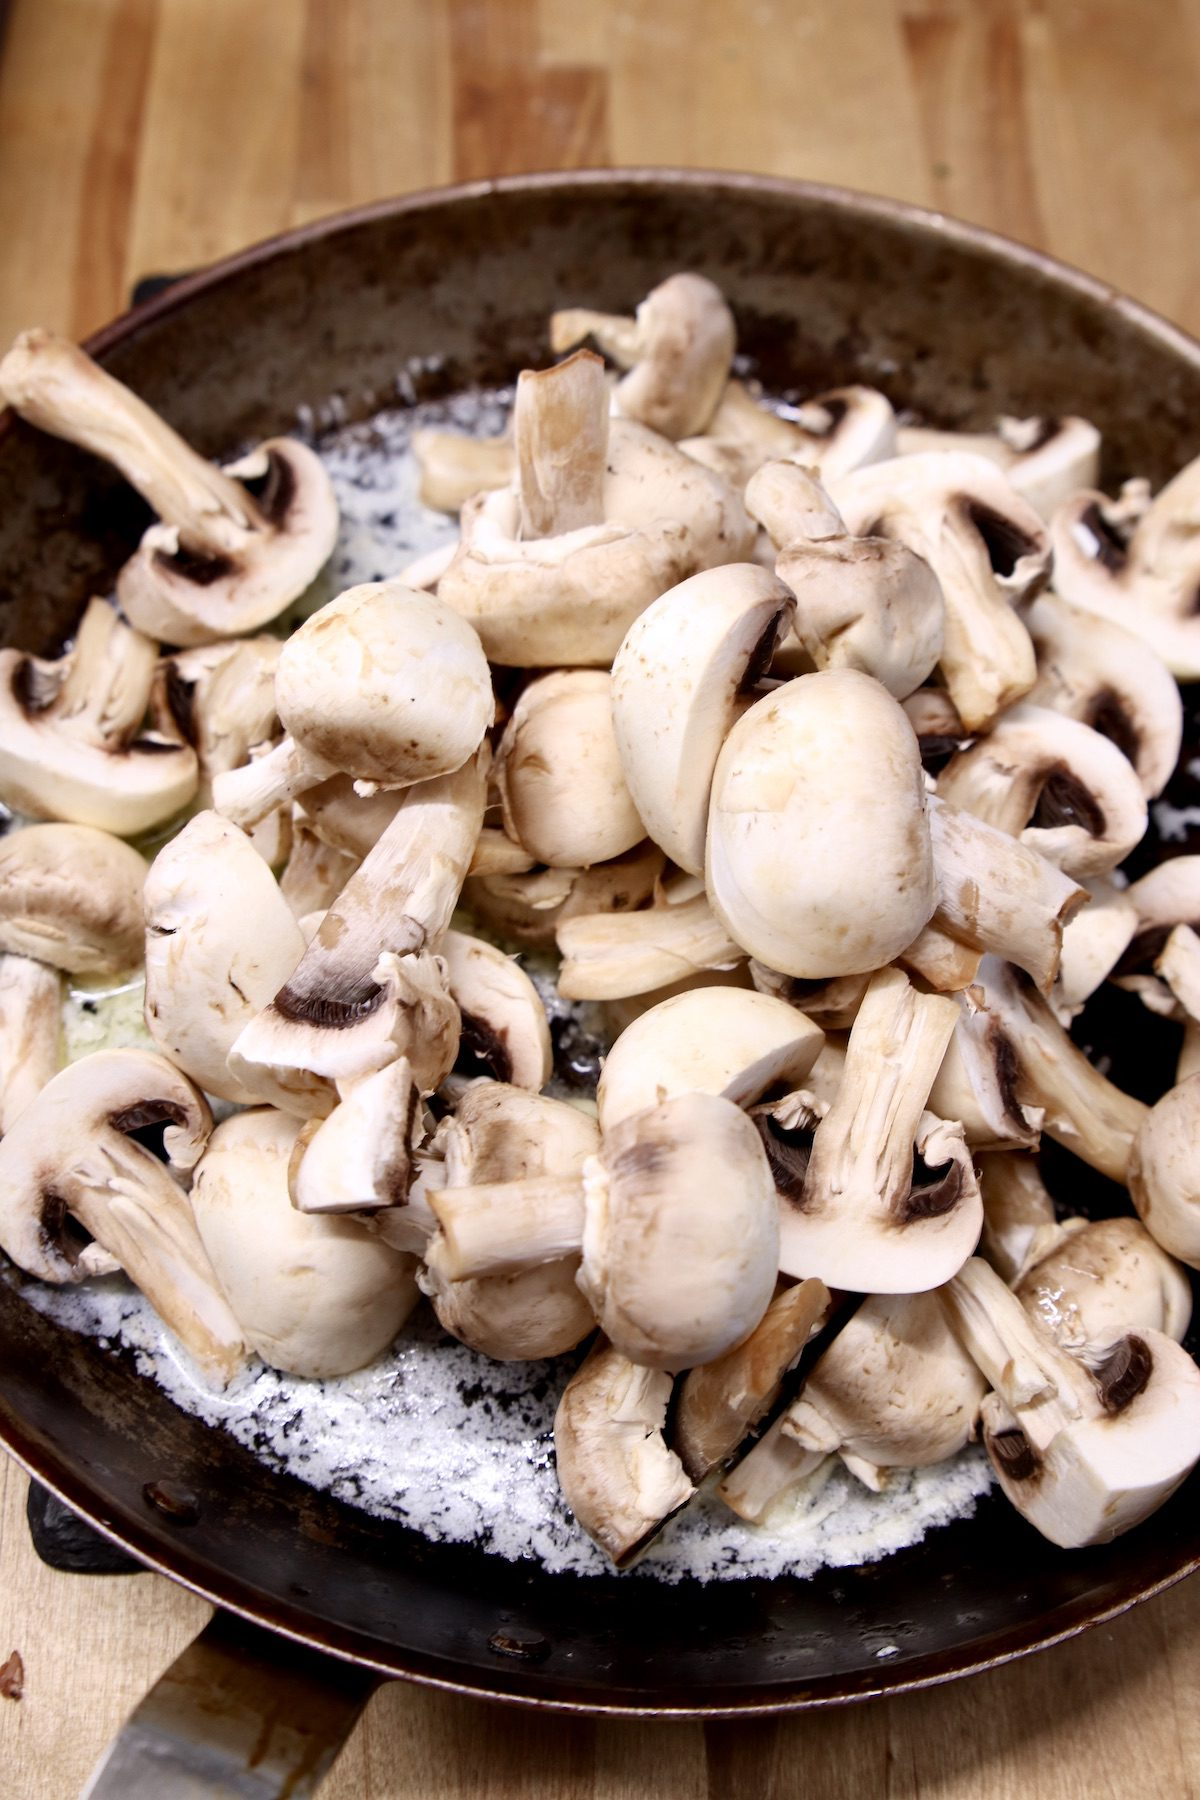 sliced mushrooms in a skillet with butter